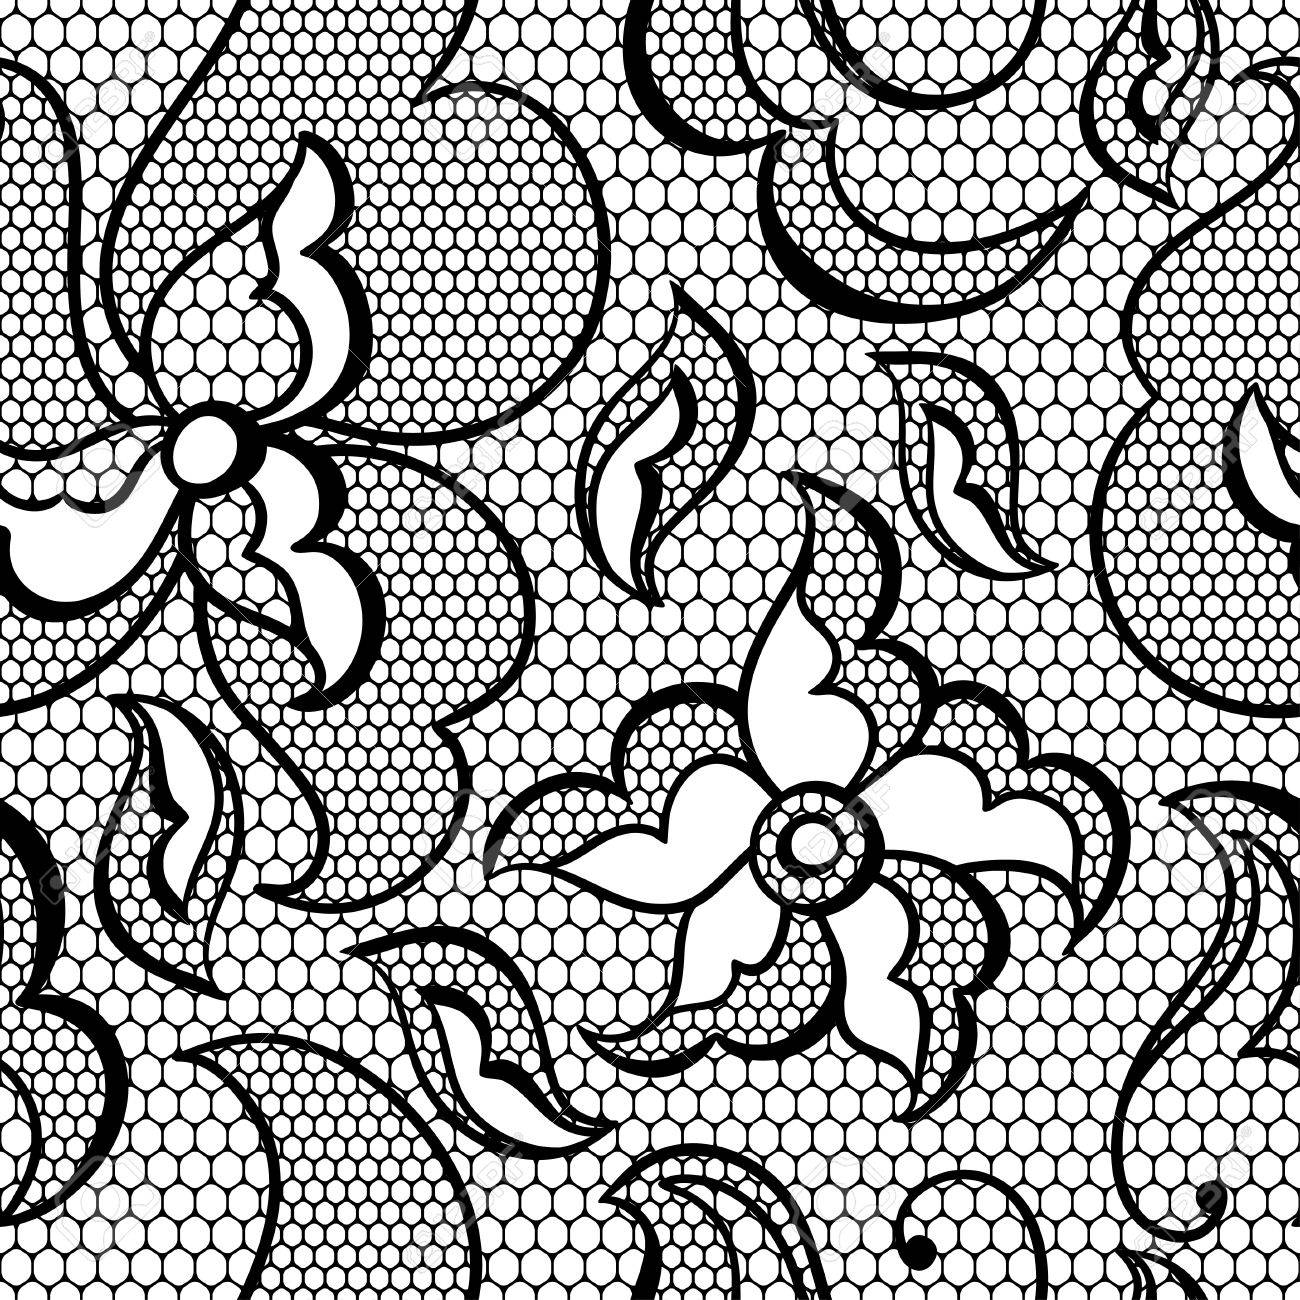 Lace fabric seamless pattern with abstract flowers. Stock Vector - 20478536